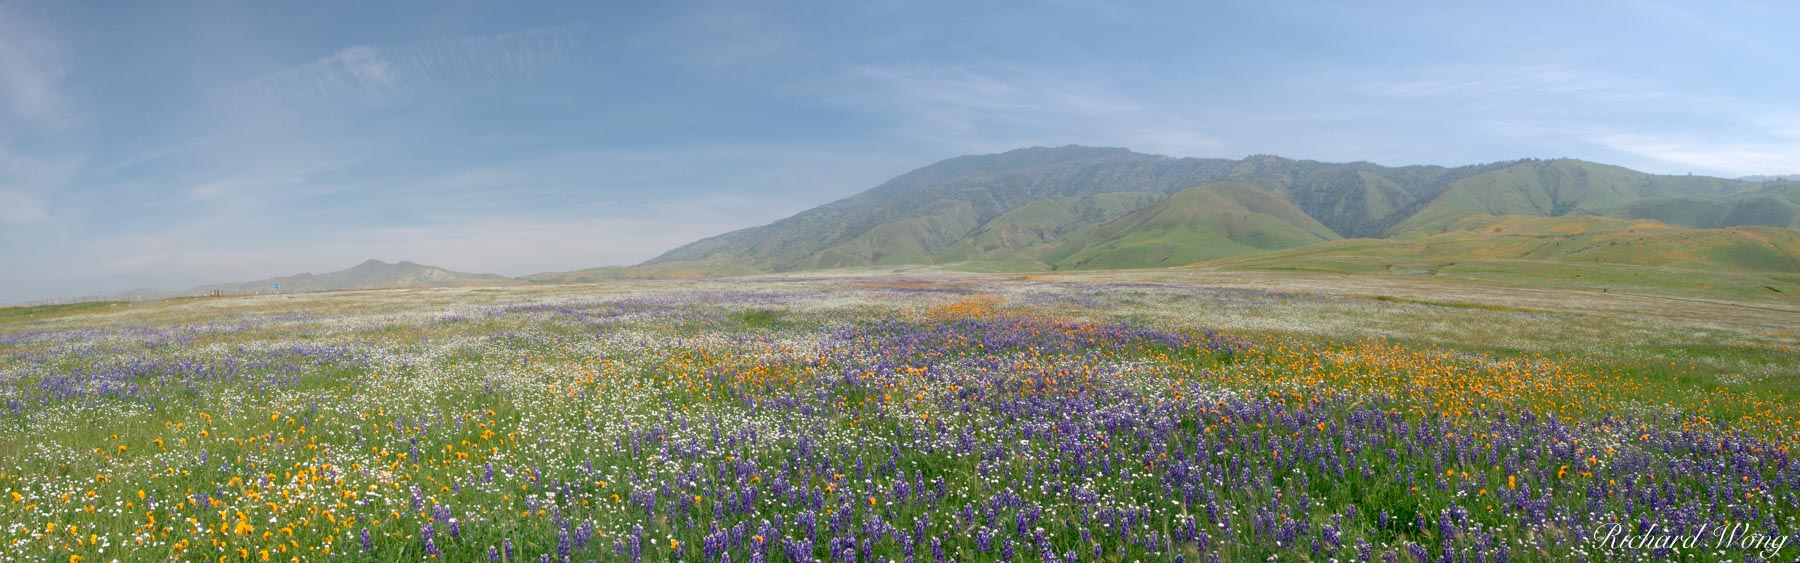 Central Valley, arvin, bloom, flora, flowers, foliage, kern county, lupine, nature, outdoor, outdoors, outside, pano, panorama, panoramas, panoramic, panoramics, panos, scenery, scenic, scenic landsca, photo